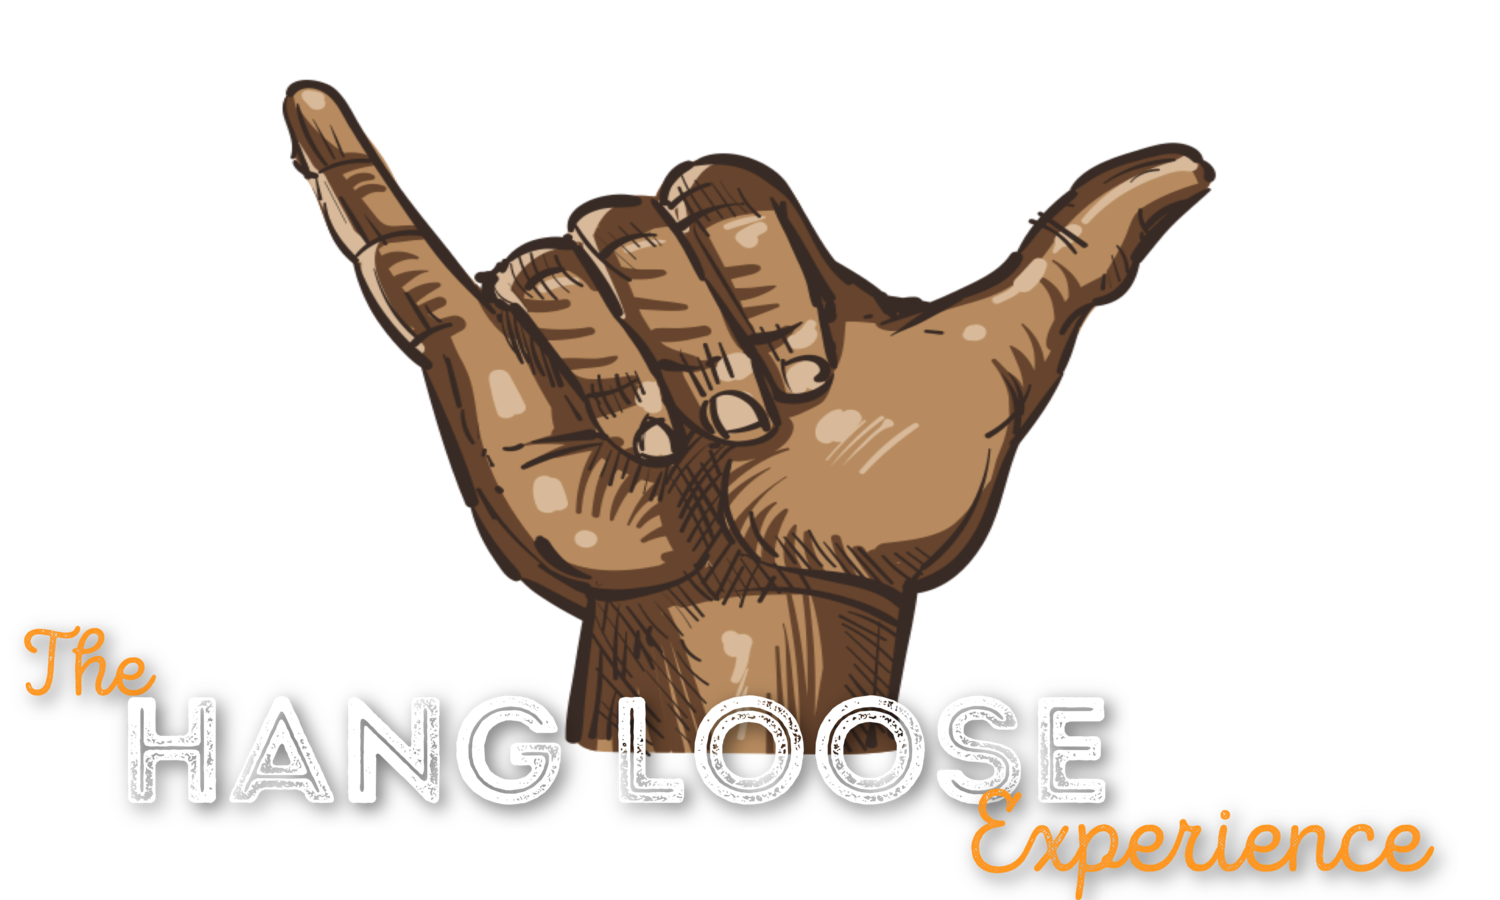 Hands clipart hang loose. The experience